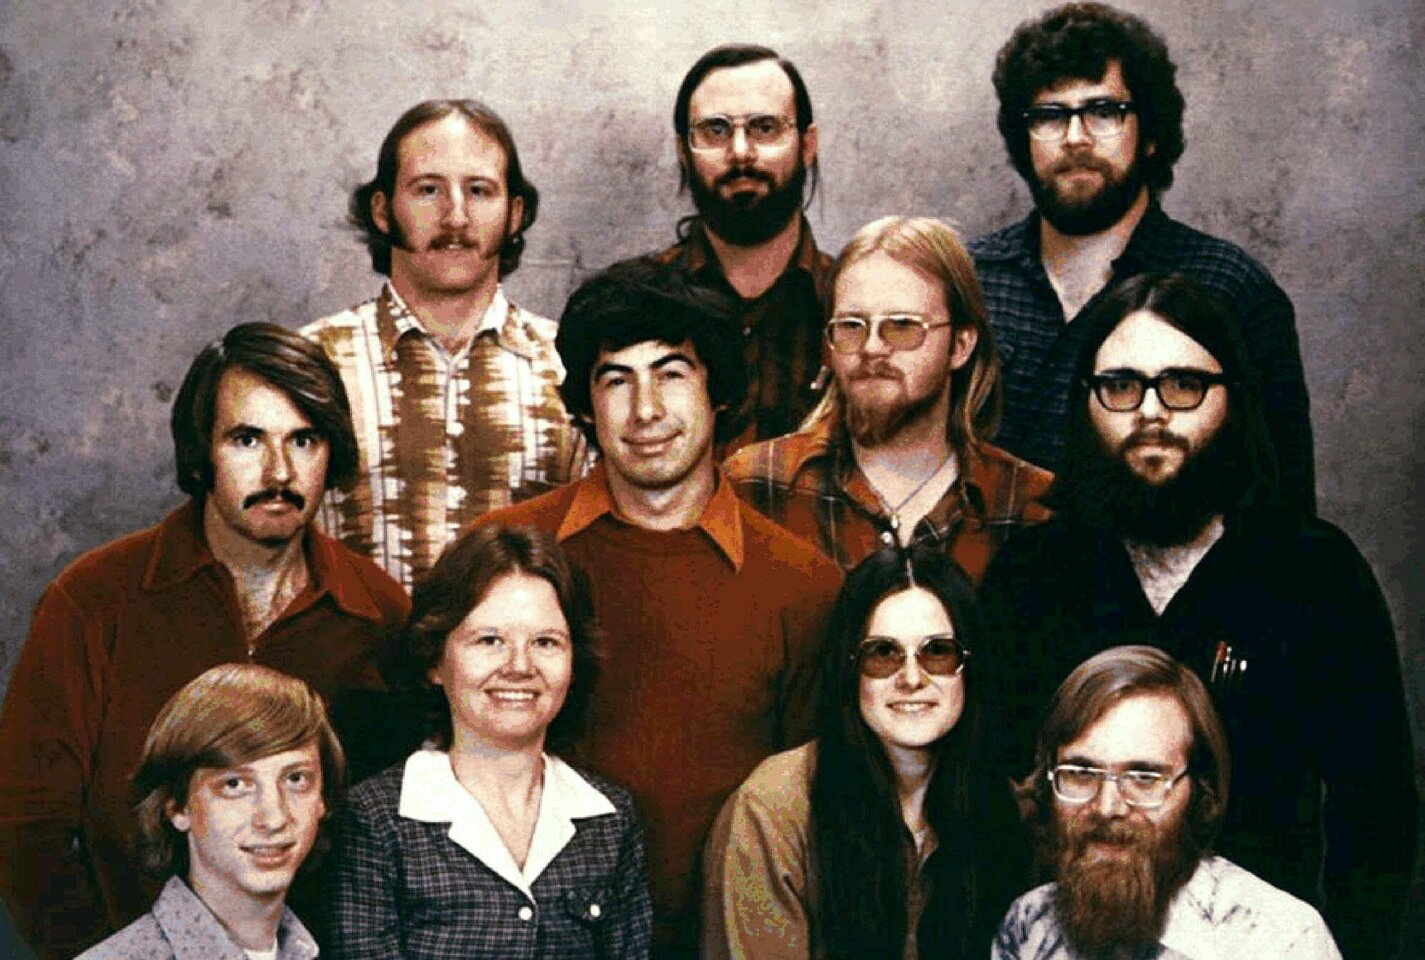 In this 1978 file photo provided by Microsoft, the 11 people who started Microsoft Corp., are photographed in Albuquerque, N.M., just prior to moving the company to the Seattle area. Shown, top row from left, are: Steve Wood, Bob Wallace and Jim Lane; second row, Bob O'Rear, Bob Greenberg, March McDonald and Gordon Letwin; and front row, Bill Gates, Andrea Lewis, Marla Wood and Paul Allen.